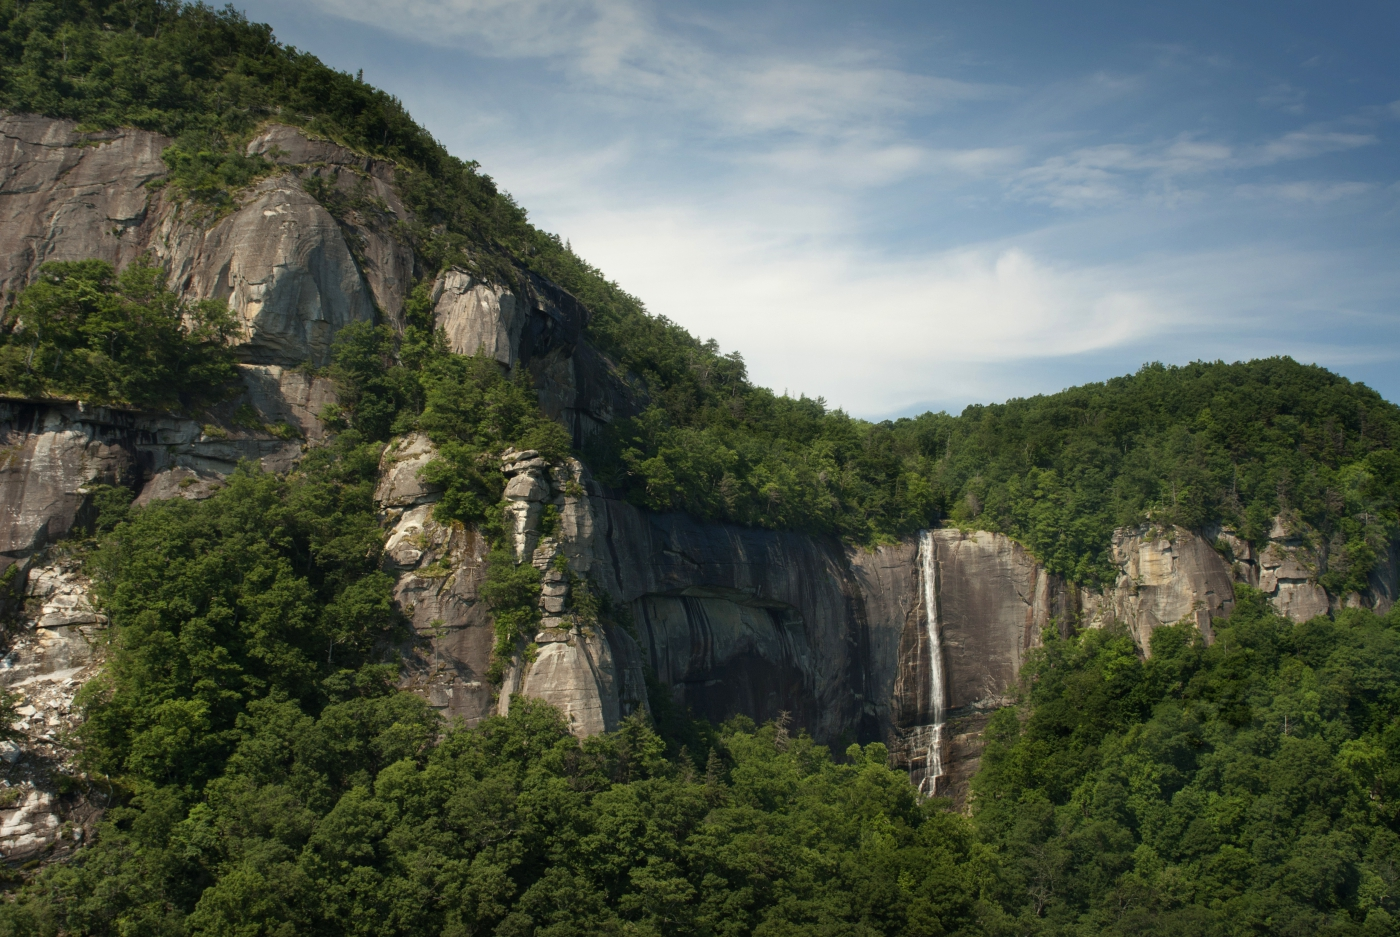 Hickory Nut Falls, located in Chimney Rock State Park, is one of the tallest waterfalls in the East.